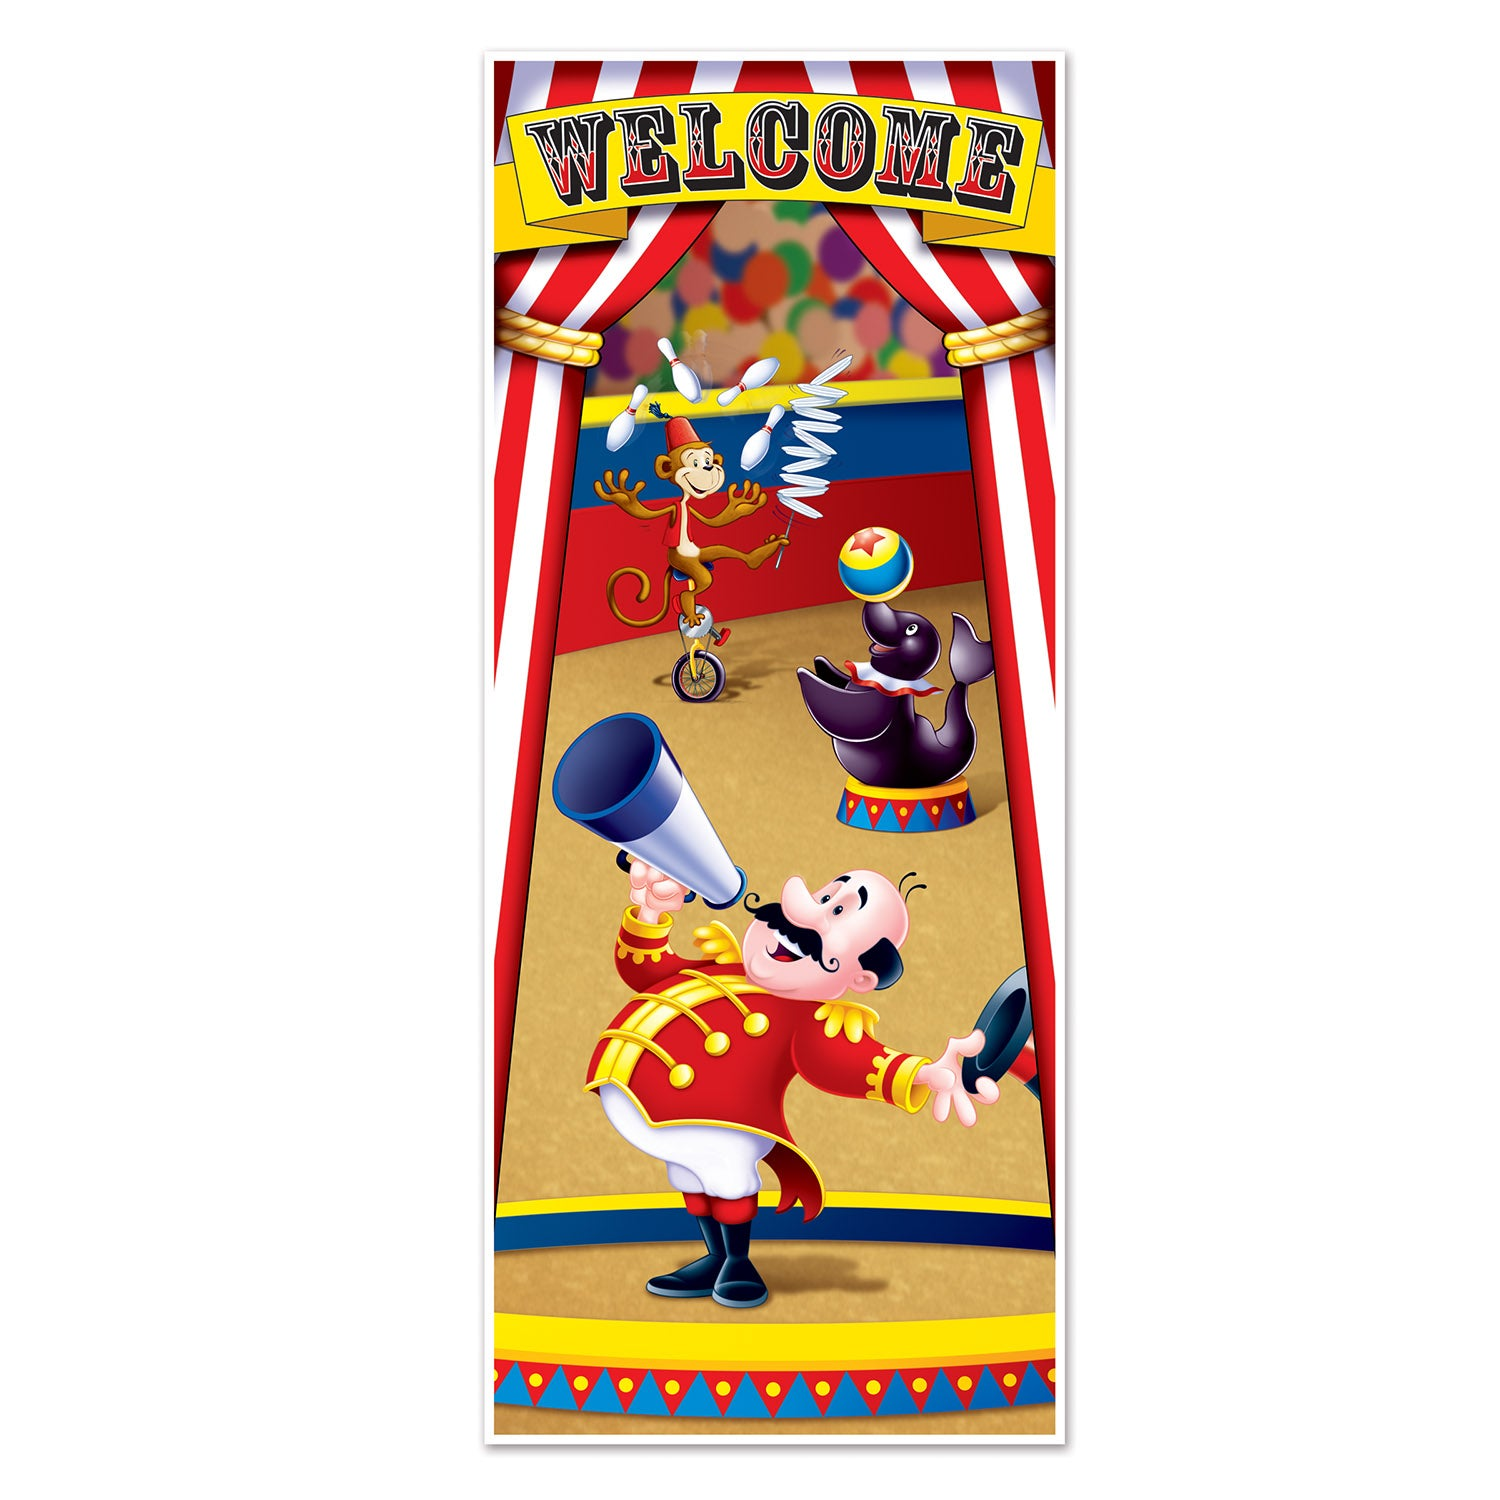 decor theme ideas galery carnival decorations kids elitflat circus party